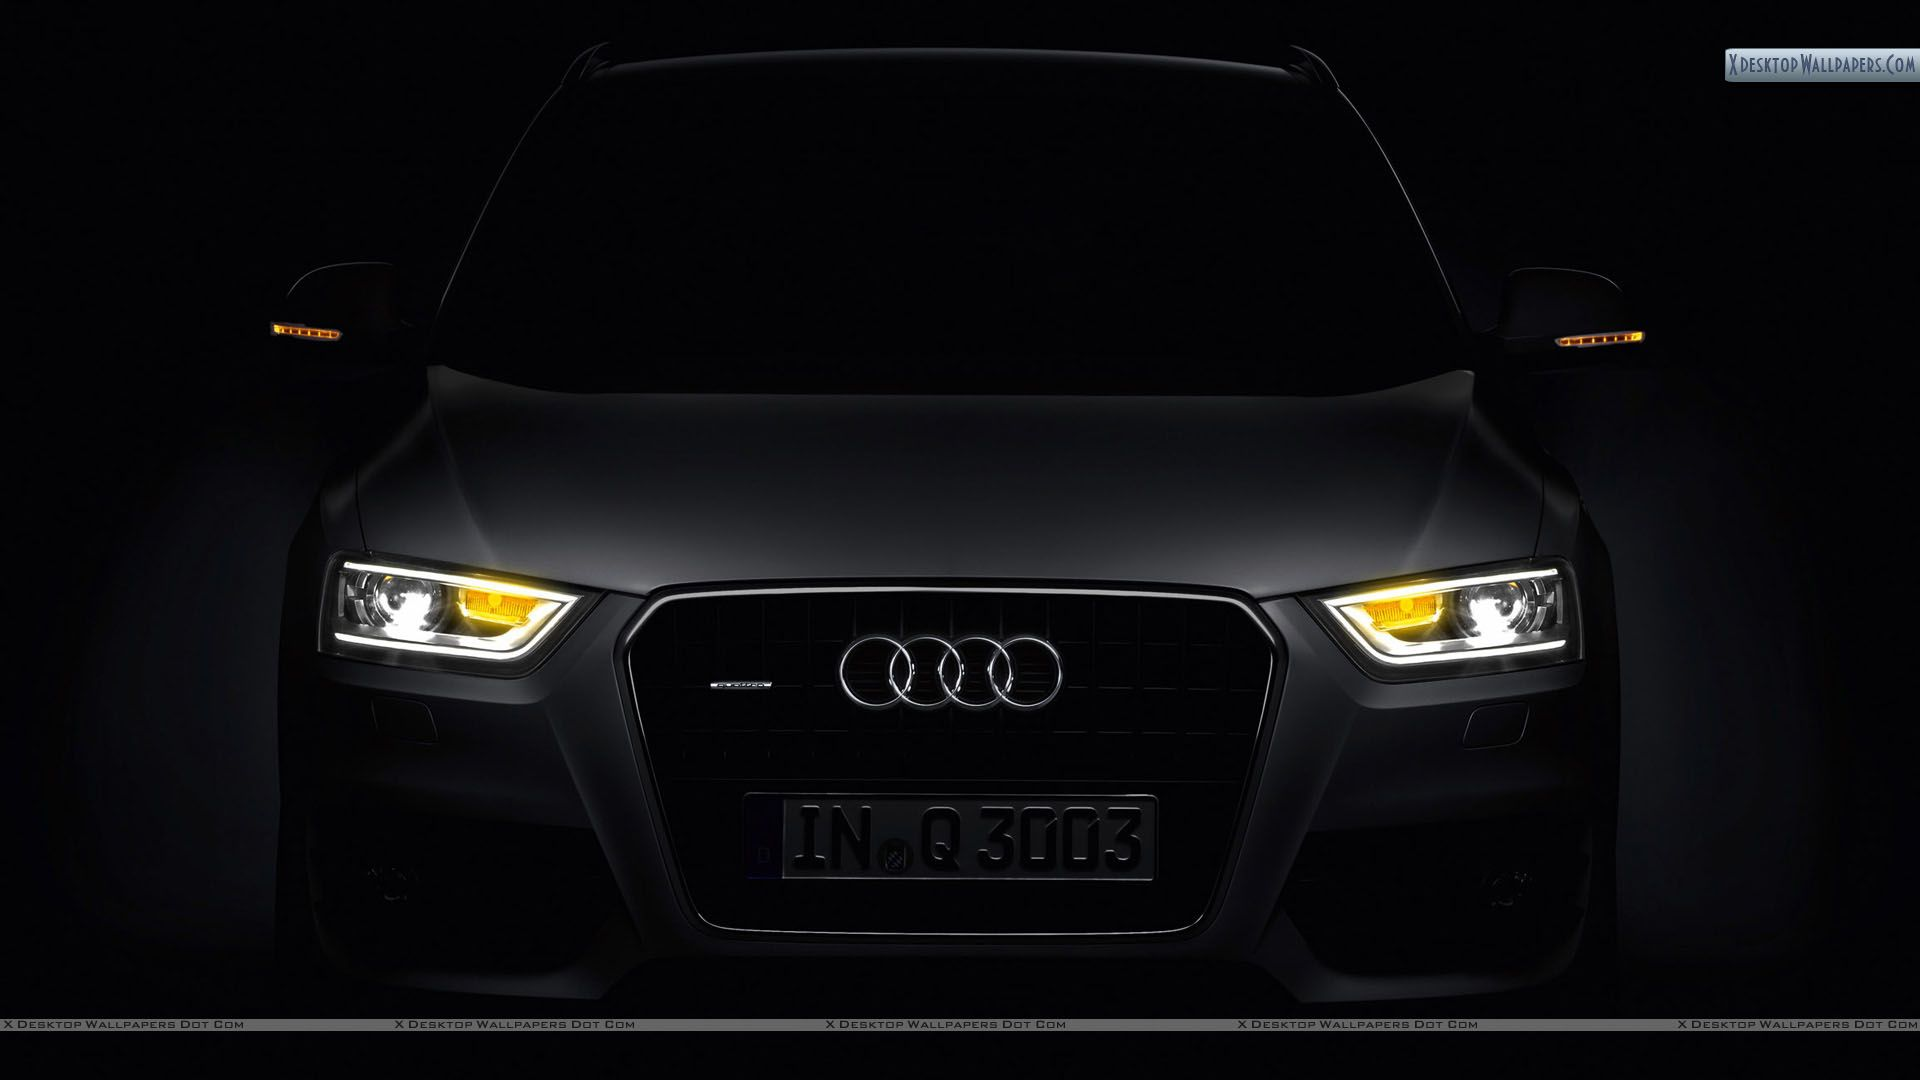 Audi Q3 Front Picture in Dark Wallpapers